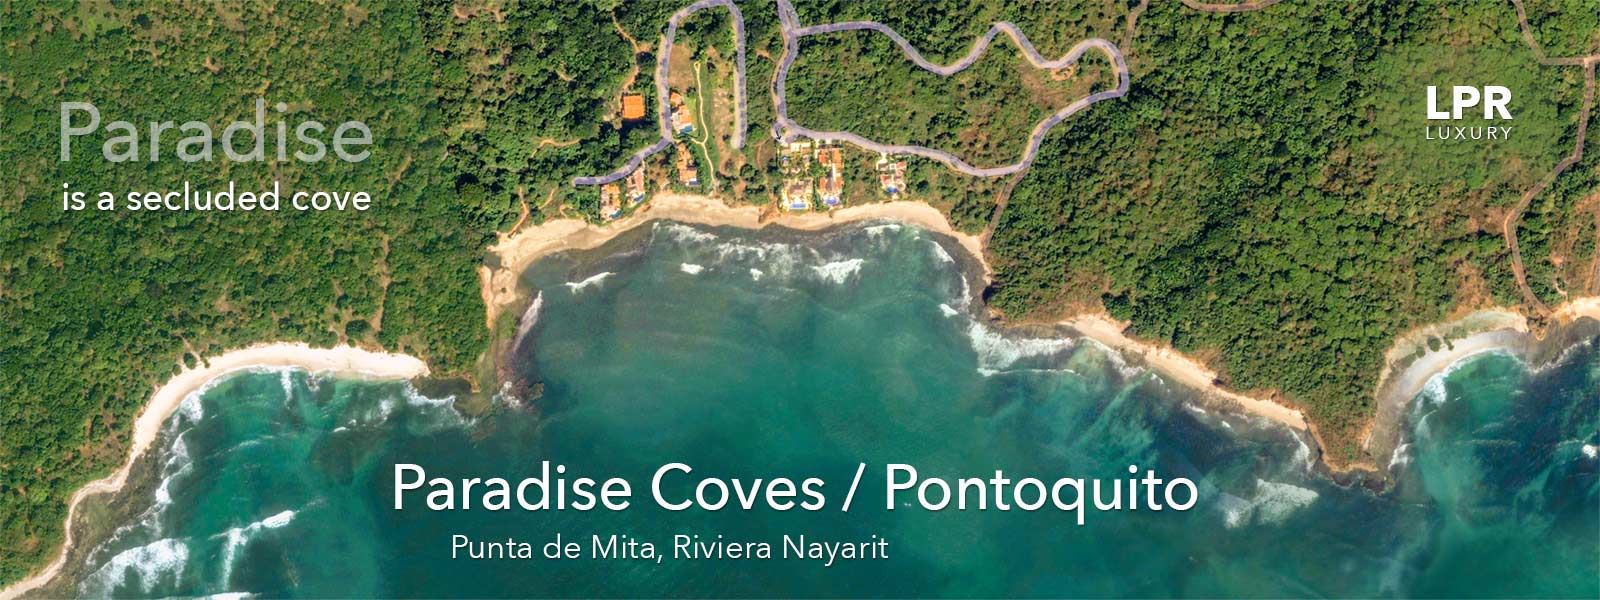 Paradise Coves and Pontoquito - Luxury Punta de Mita Real Estate and Vacation Rentals